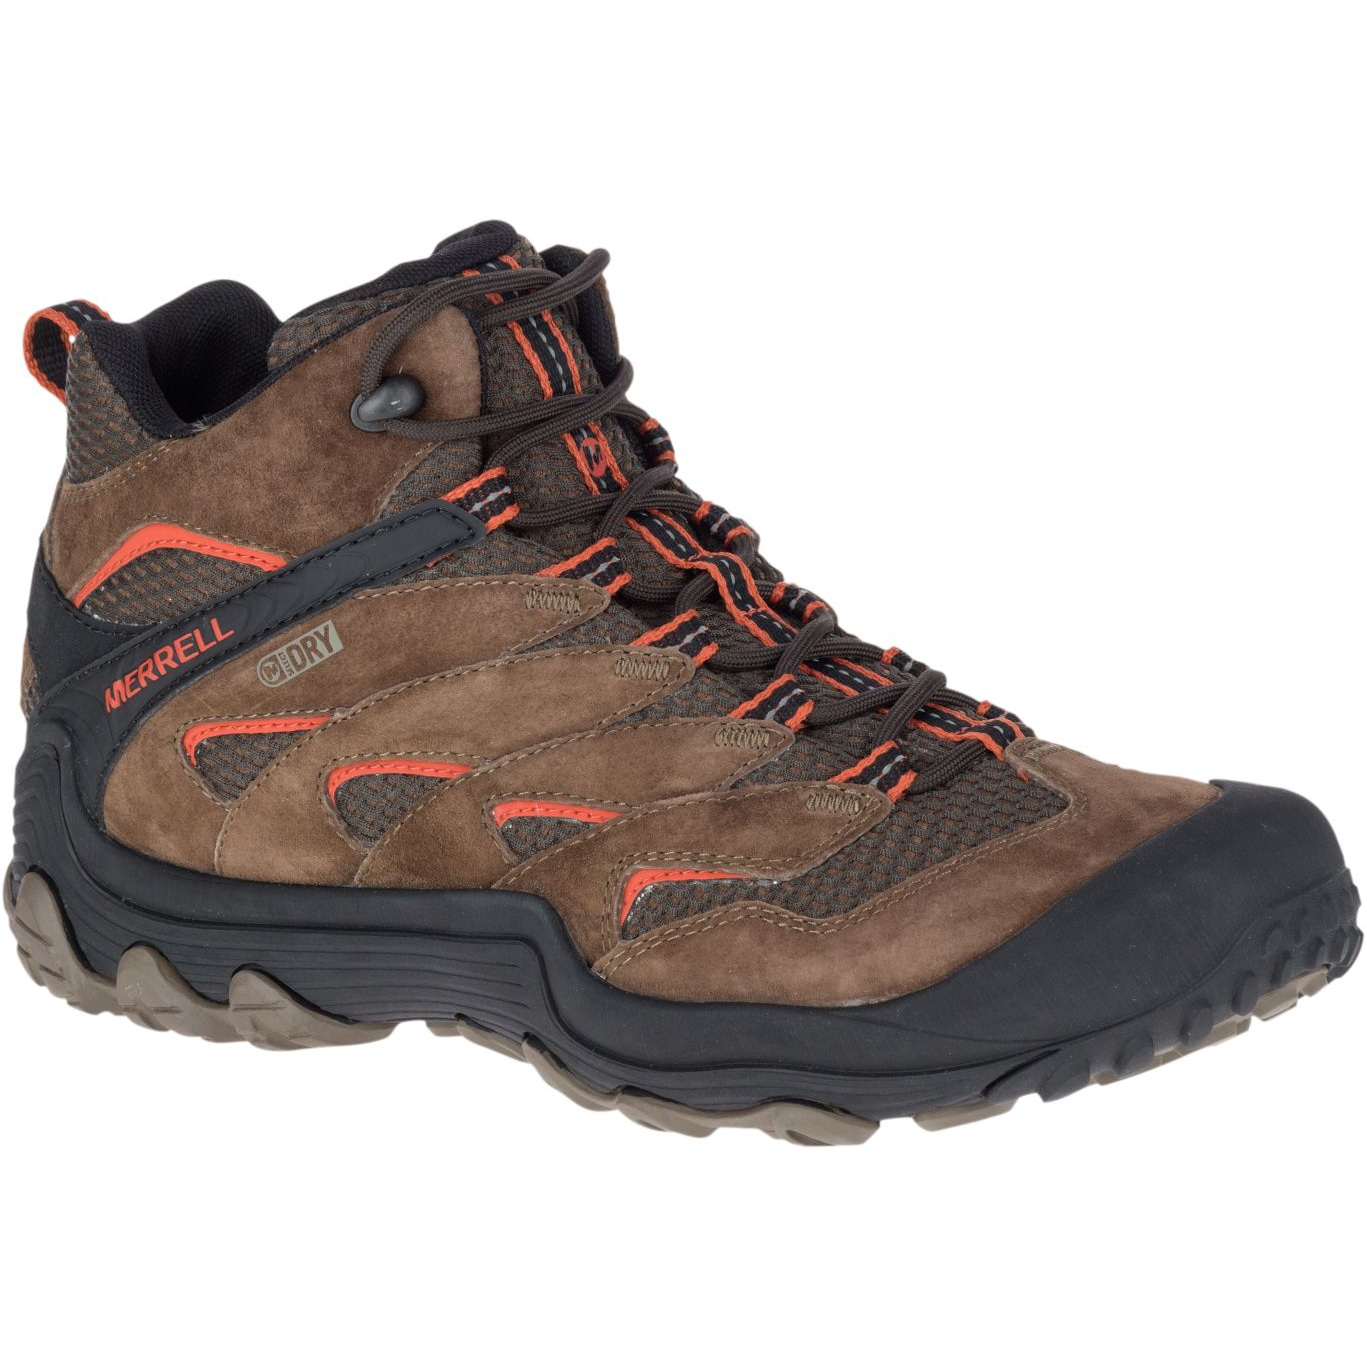 Cham 7 Limit Mid Waterproof Boot - Men's